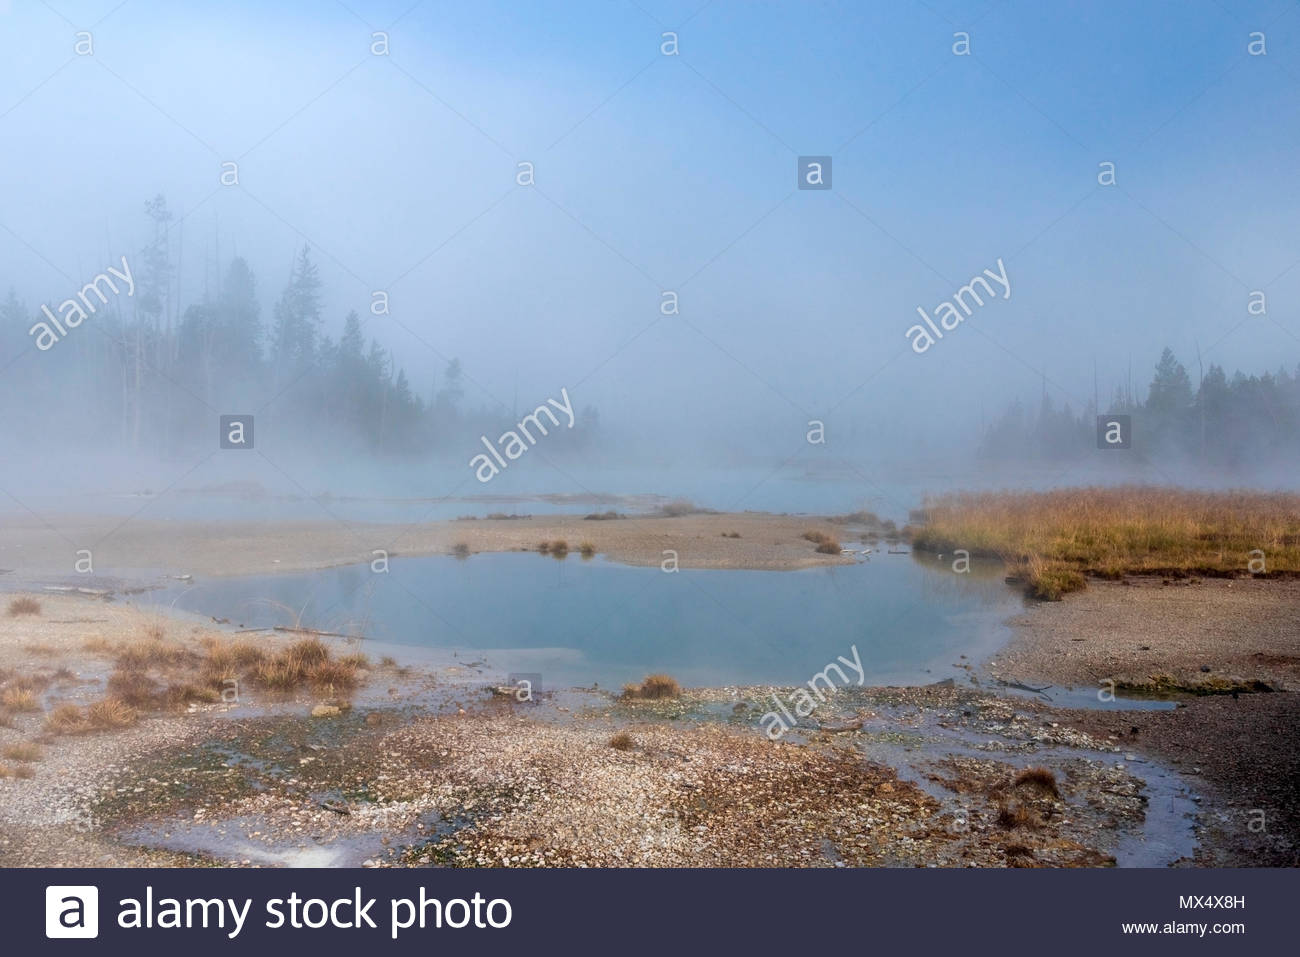 Geothermal hot spring with fog and steam and trees in the 1300x957